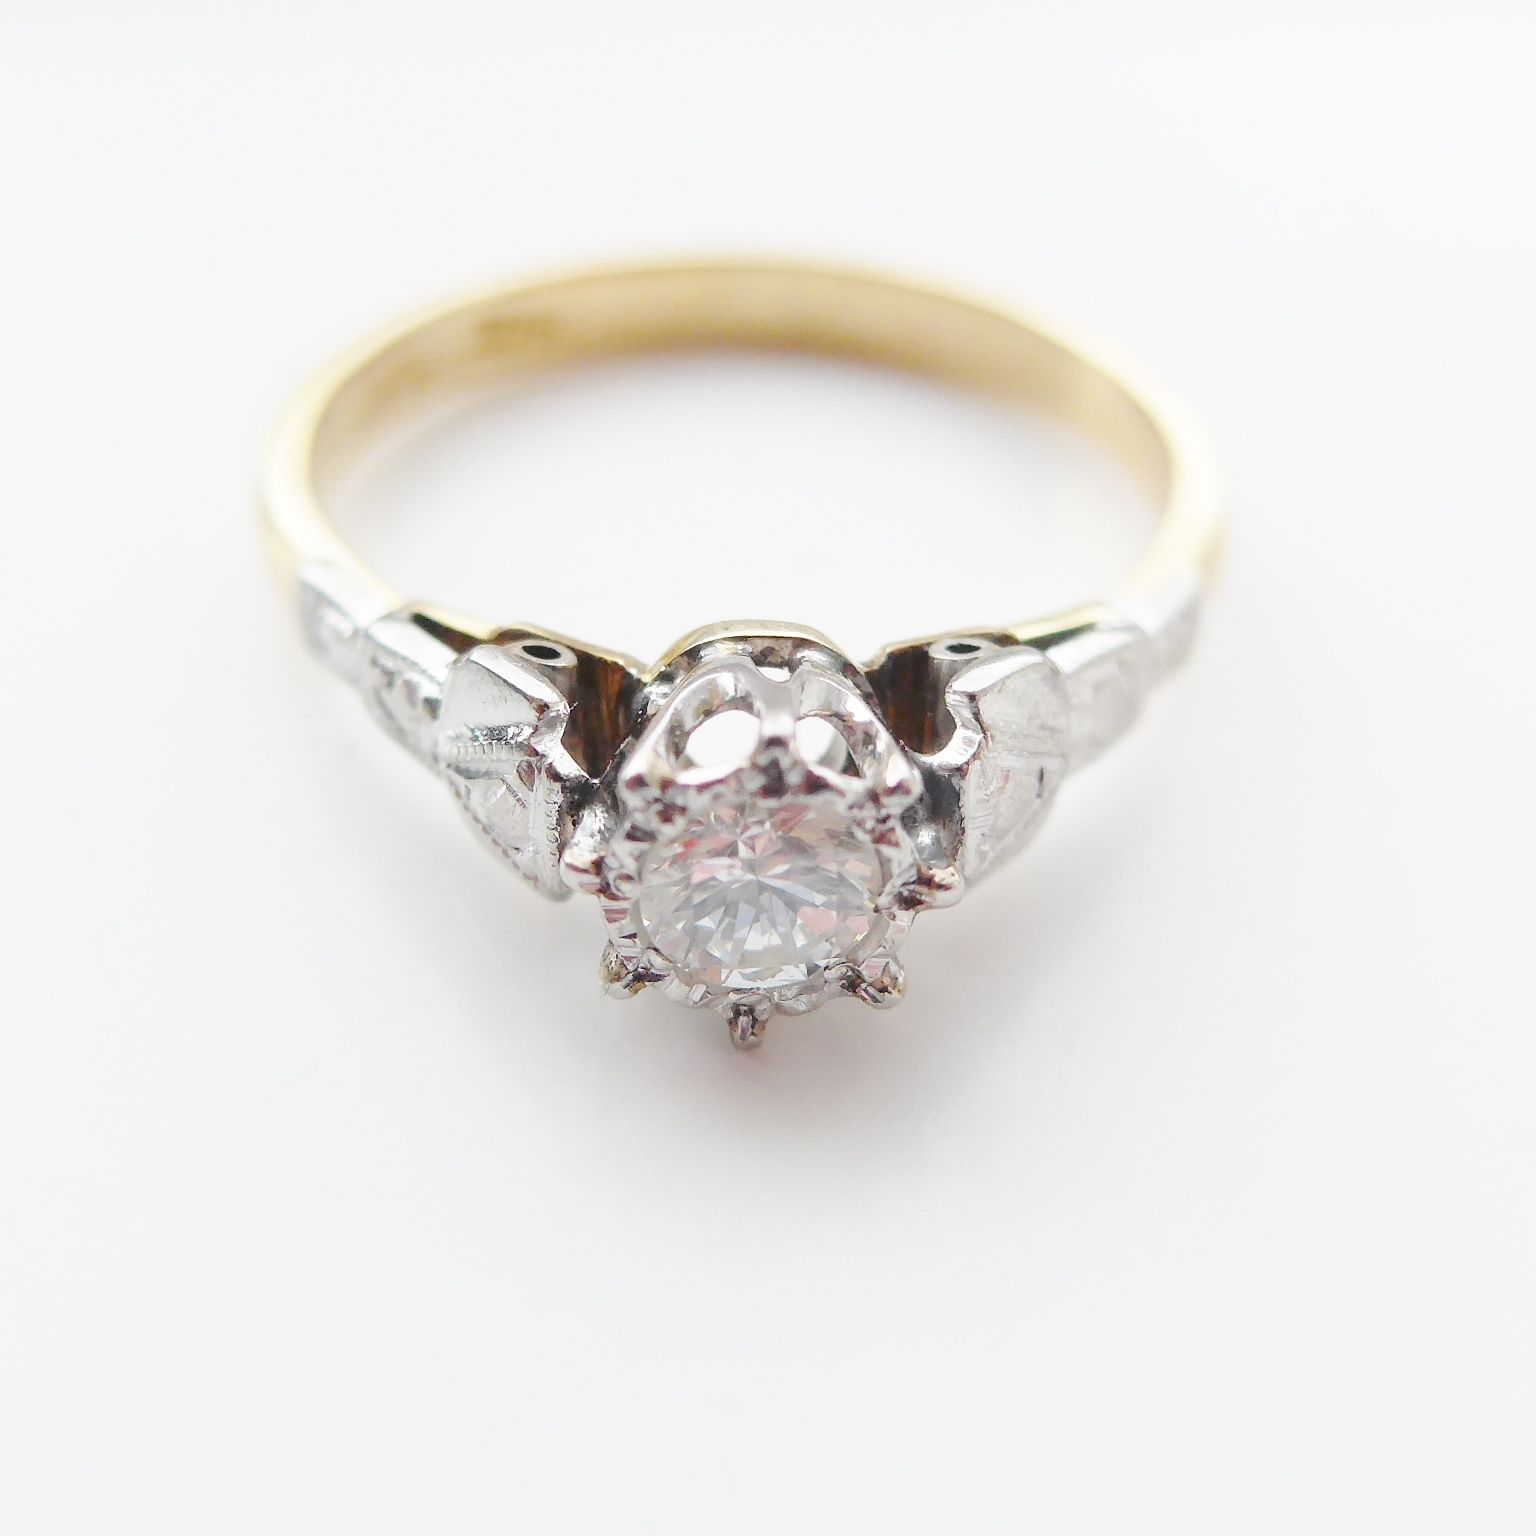 lugaro ring carat solitaire canadian solitaireringsale jewellery bridal rings diamond canadiandiamond engagement